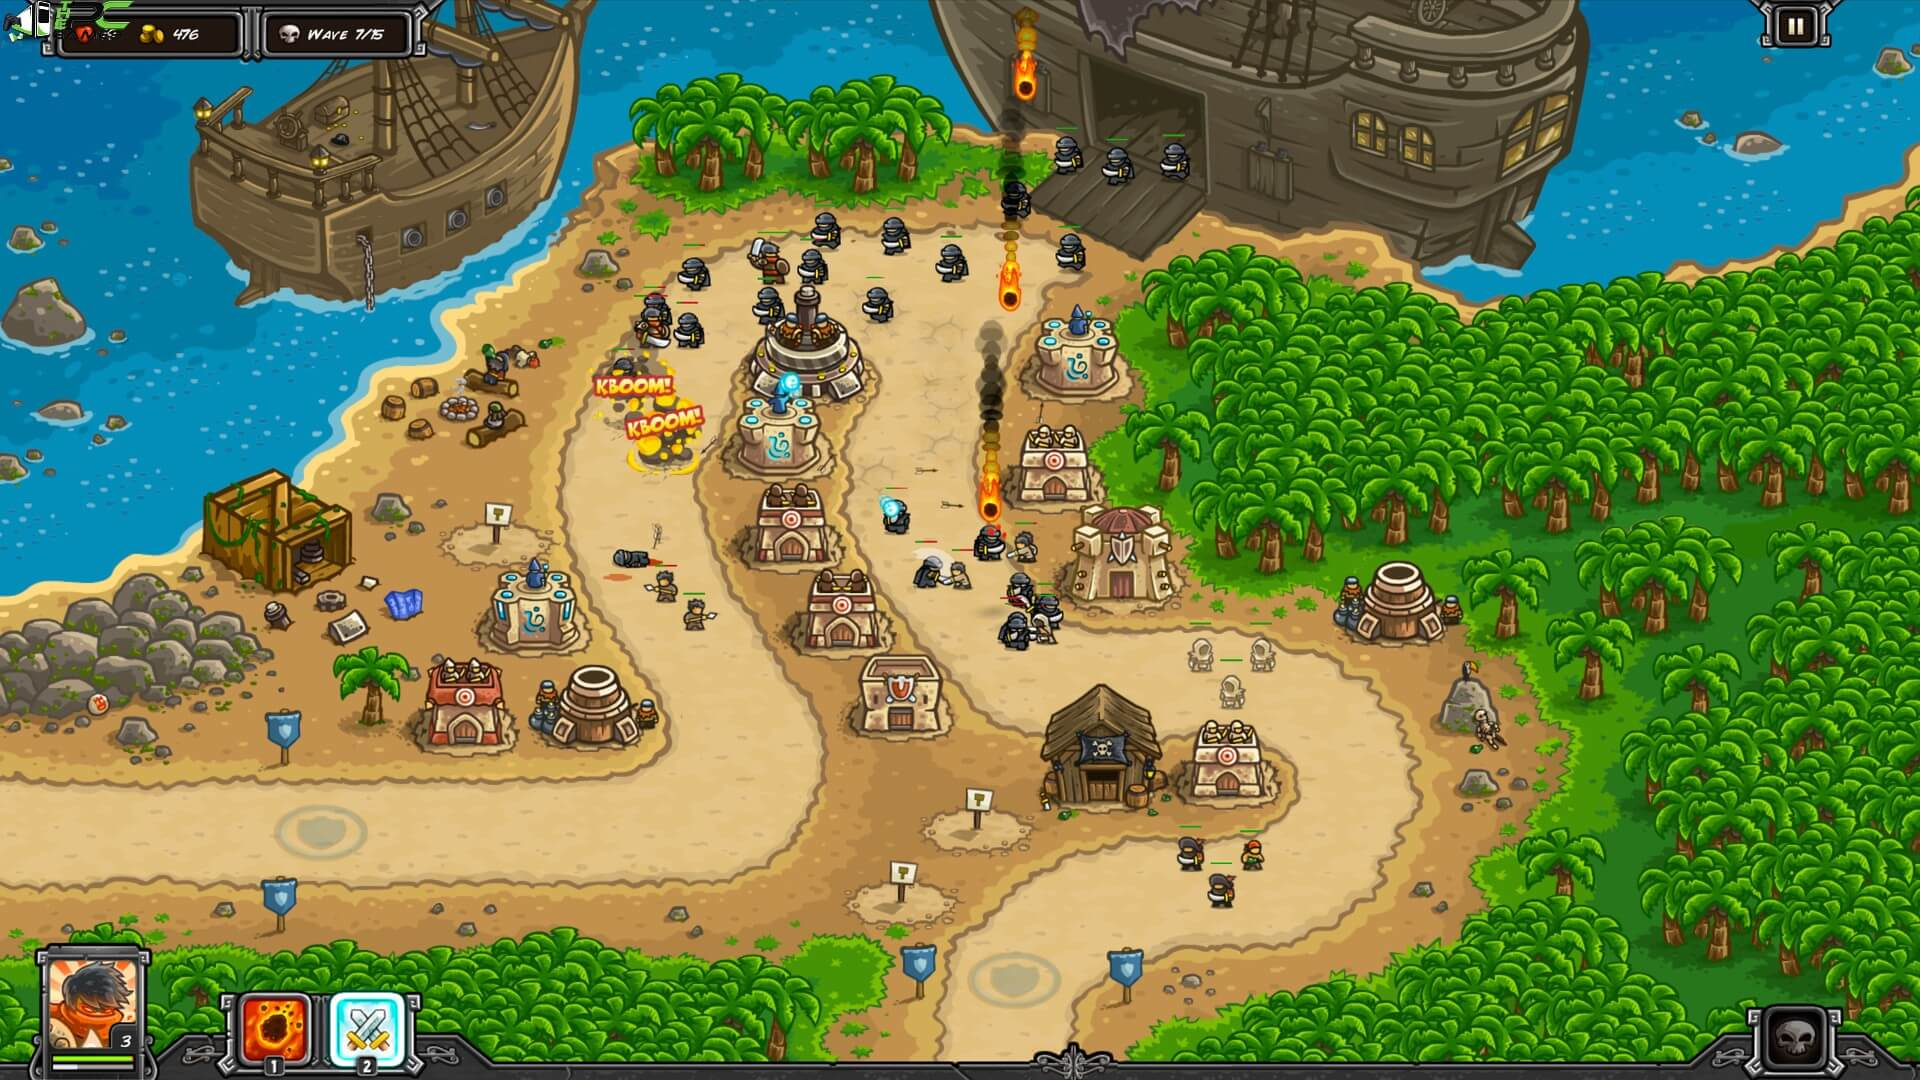 Kingdom Rush Frontiers Pc Game Free Download